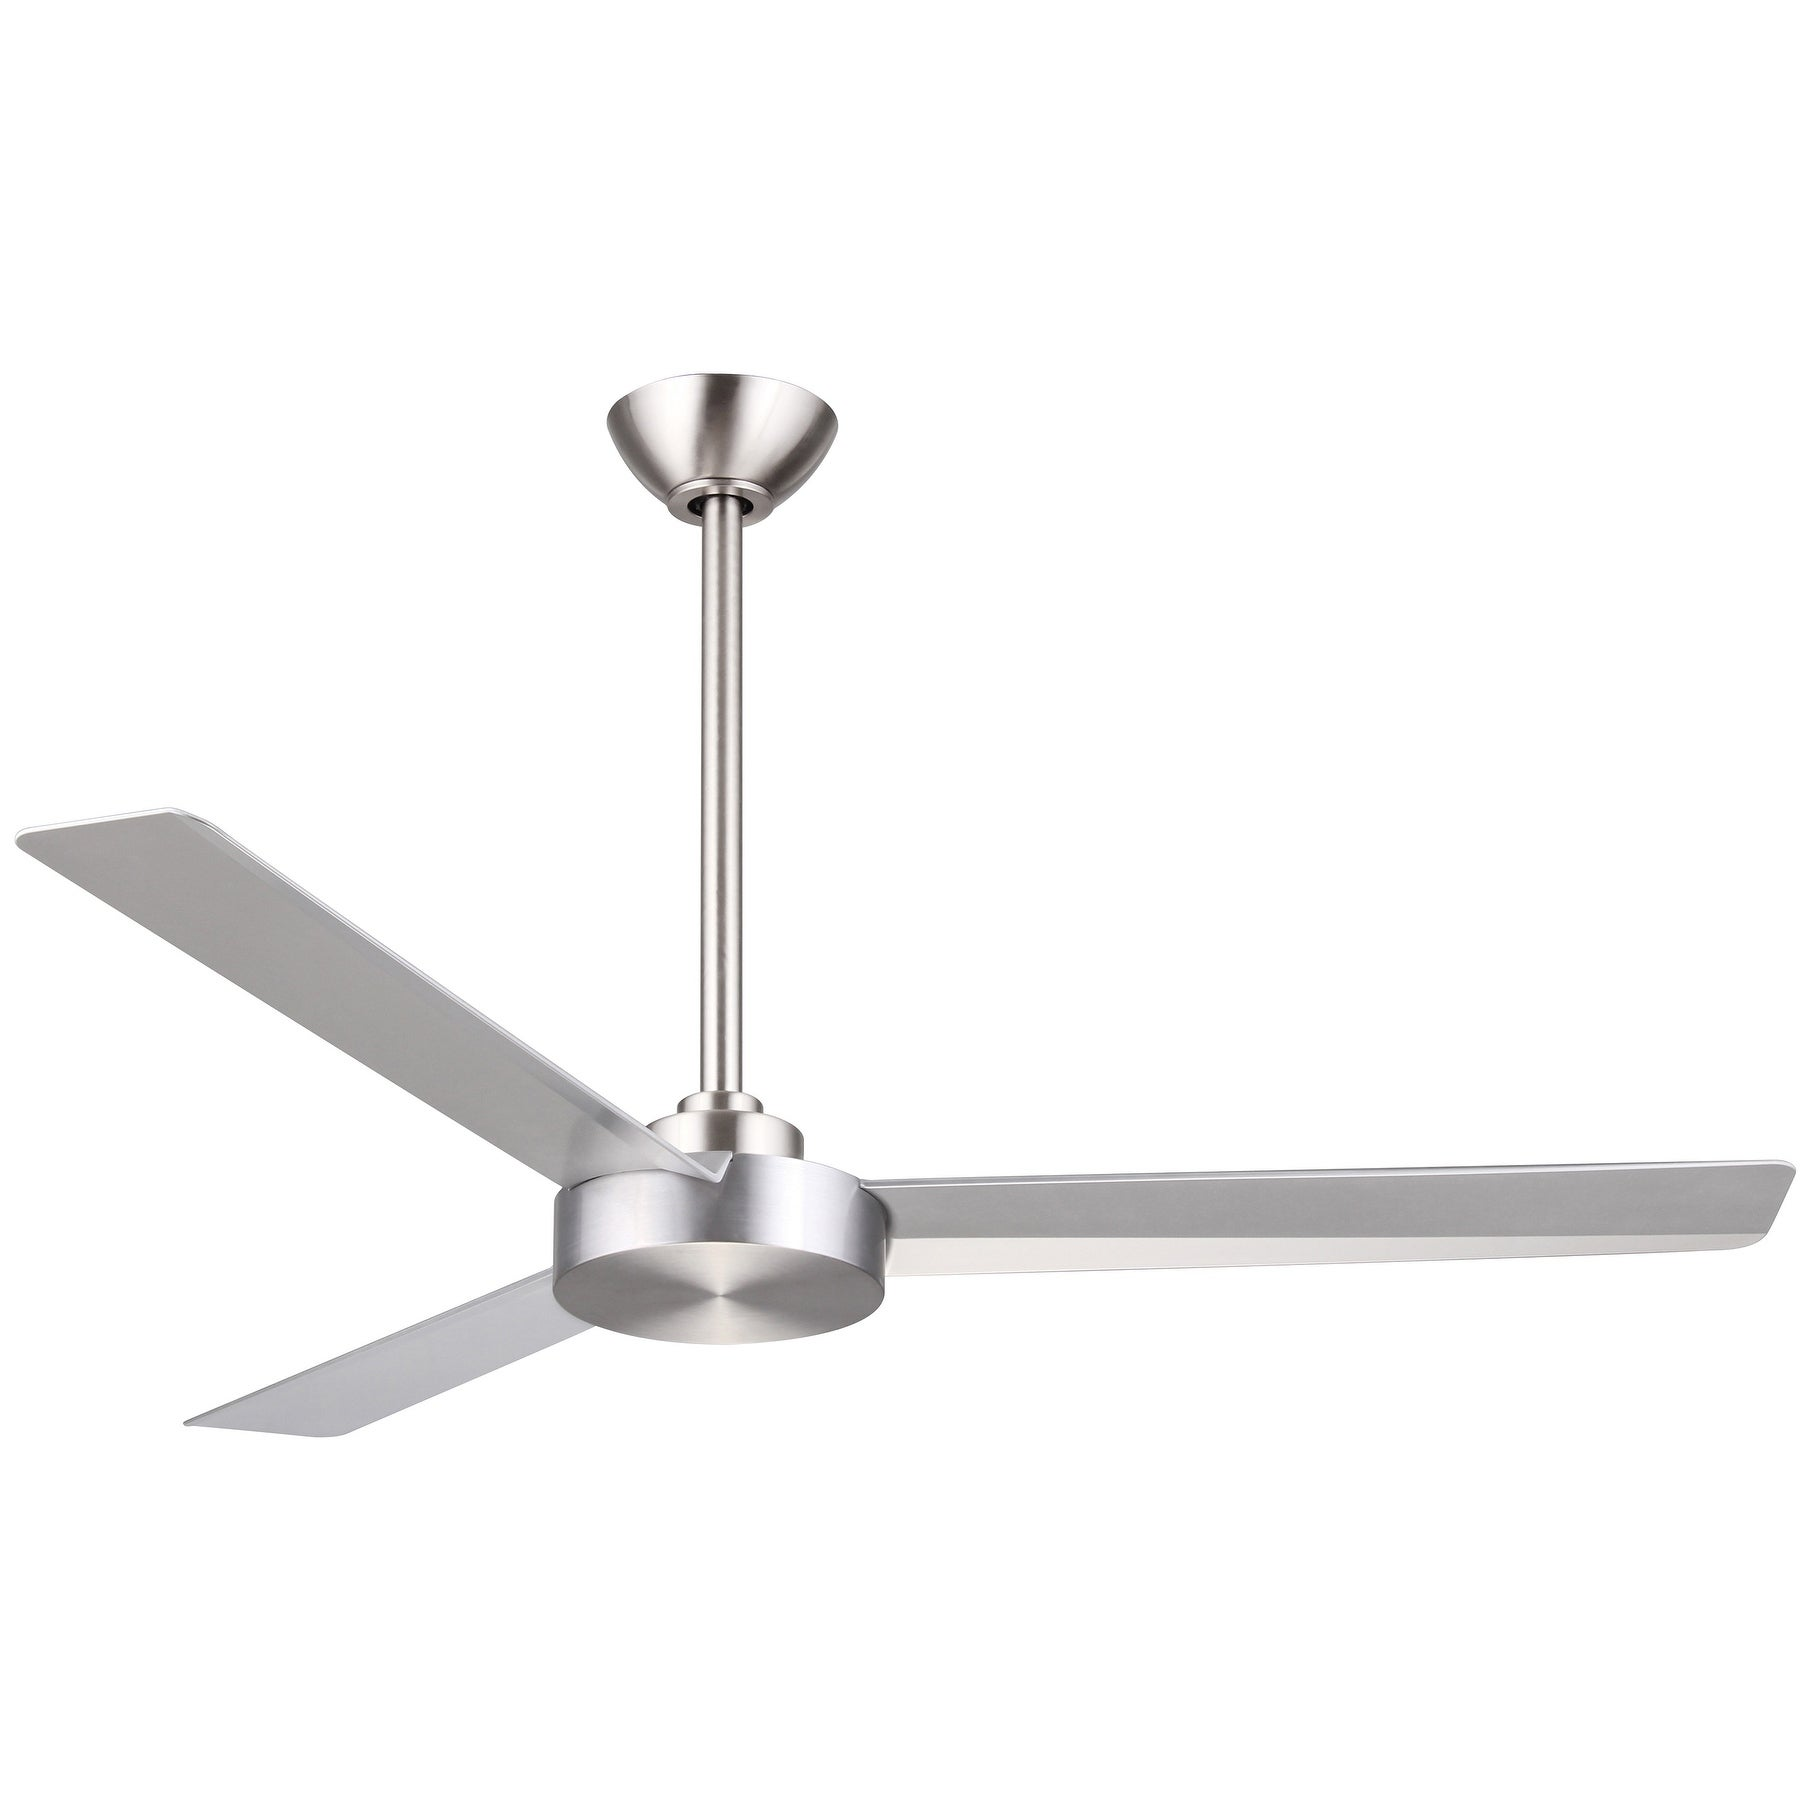 Minka Aire Roto Brushed Aluminum Finish 52 inch Ceiling Fan Free